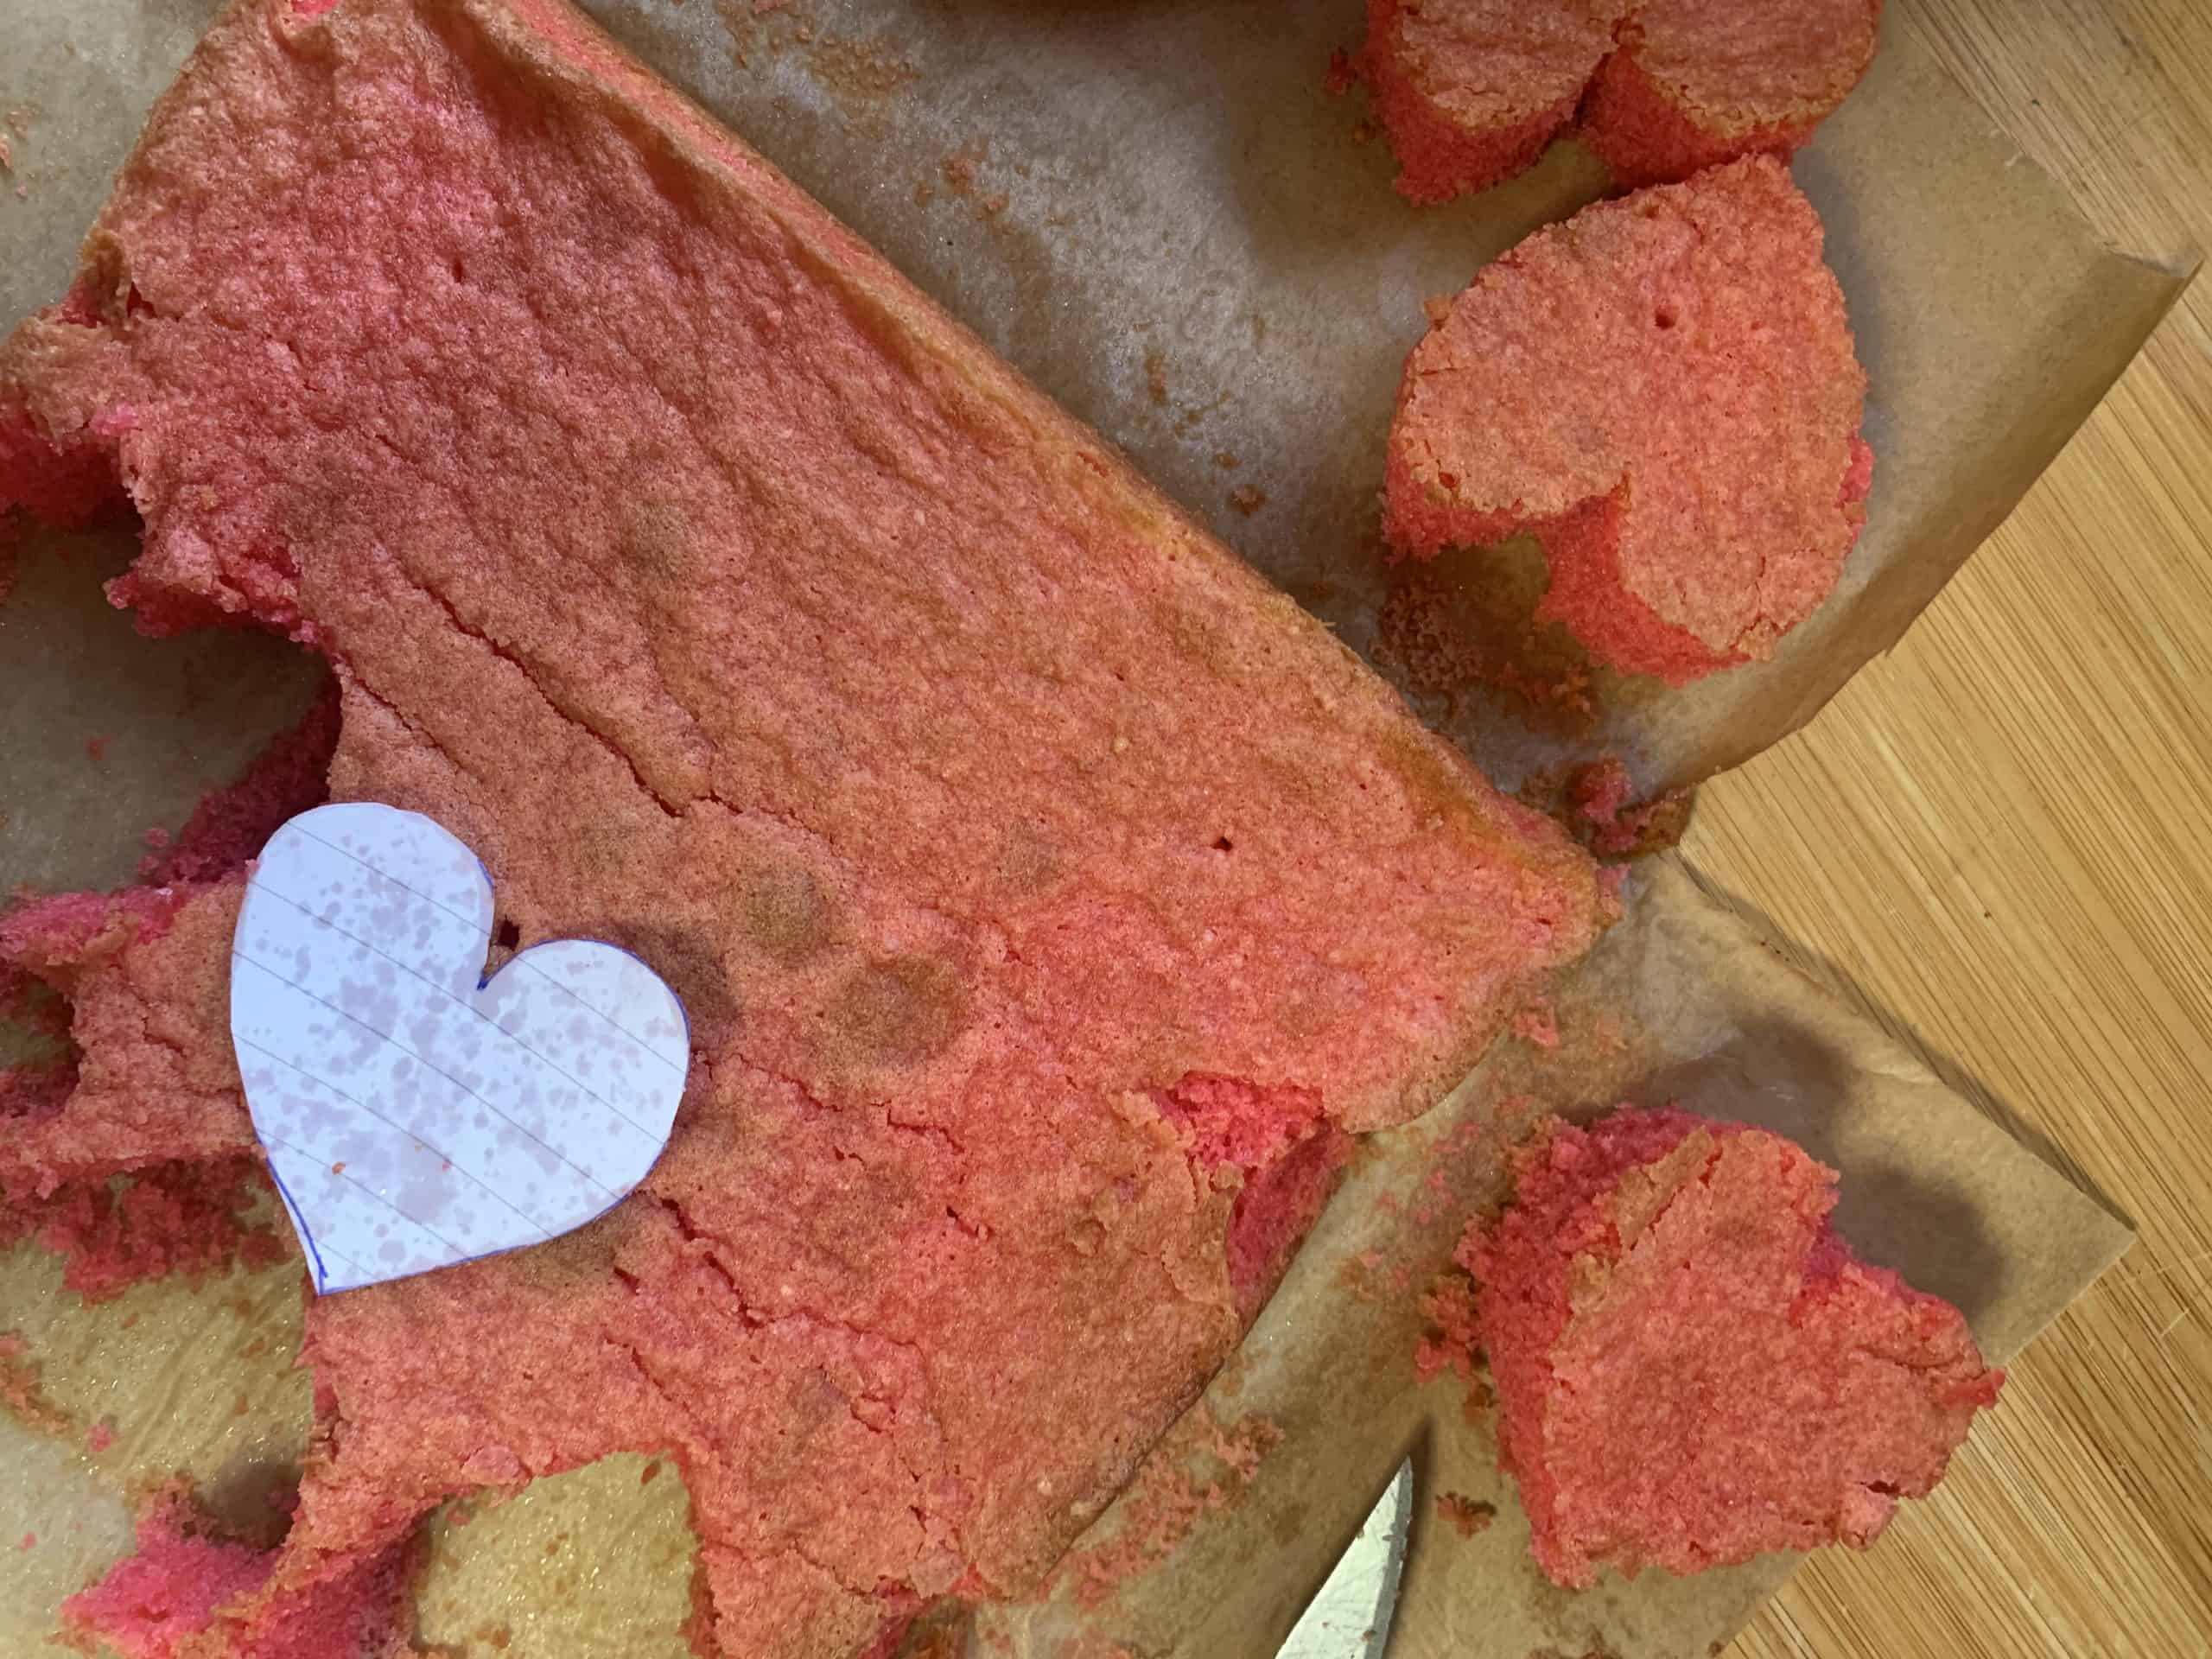 gluten free hidden heart cake recipe step by step guide 1